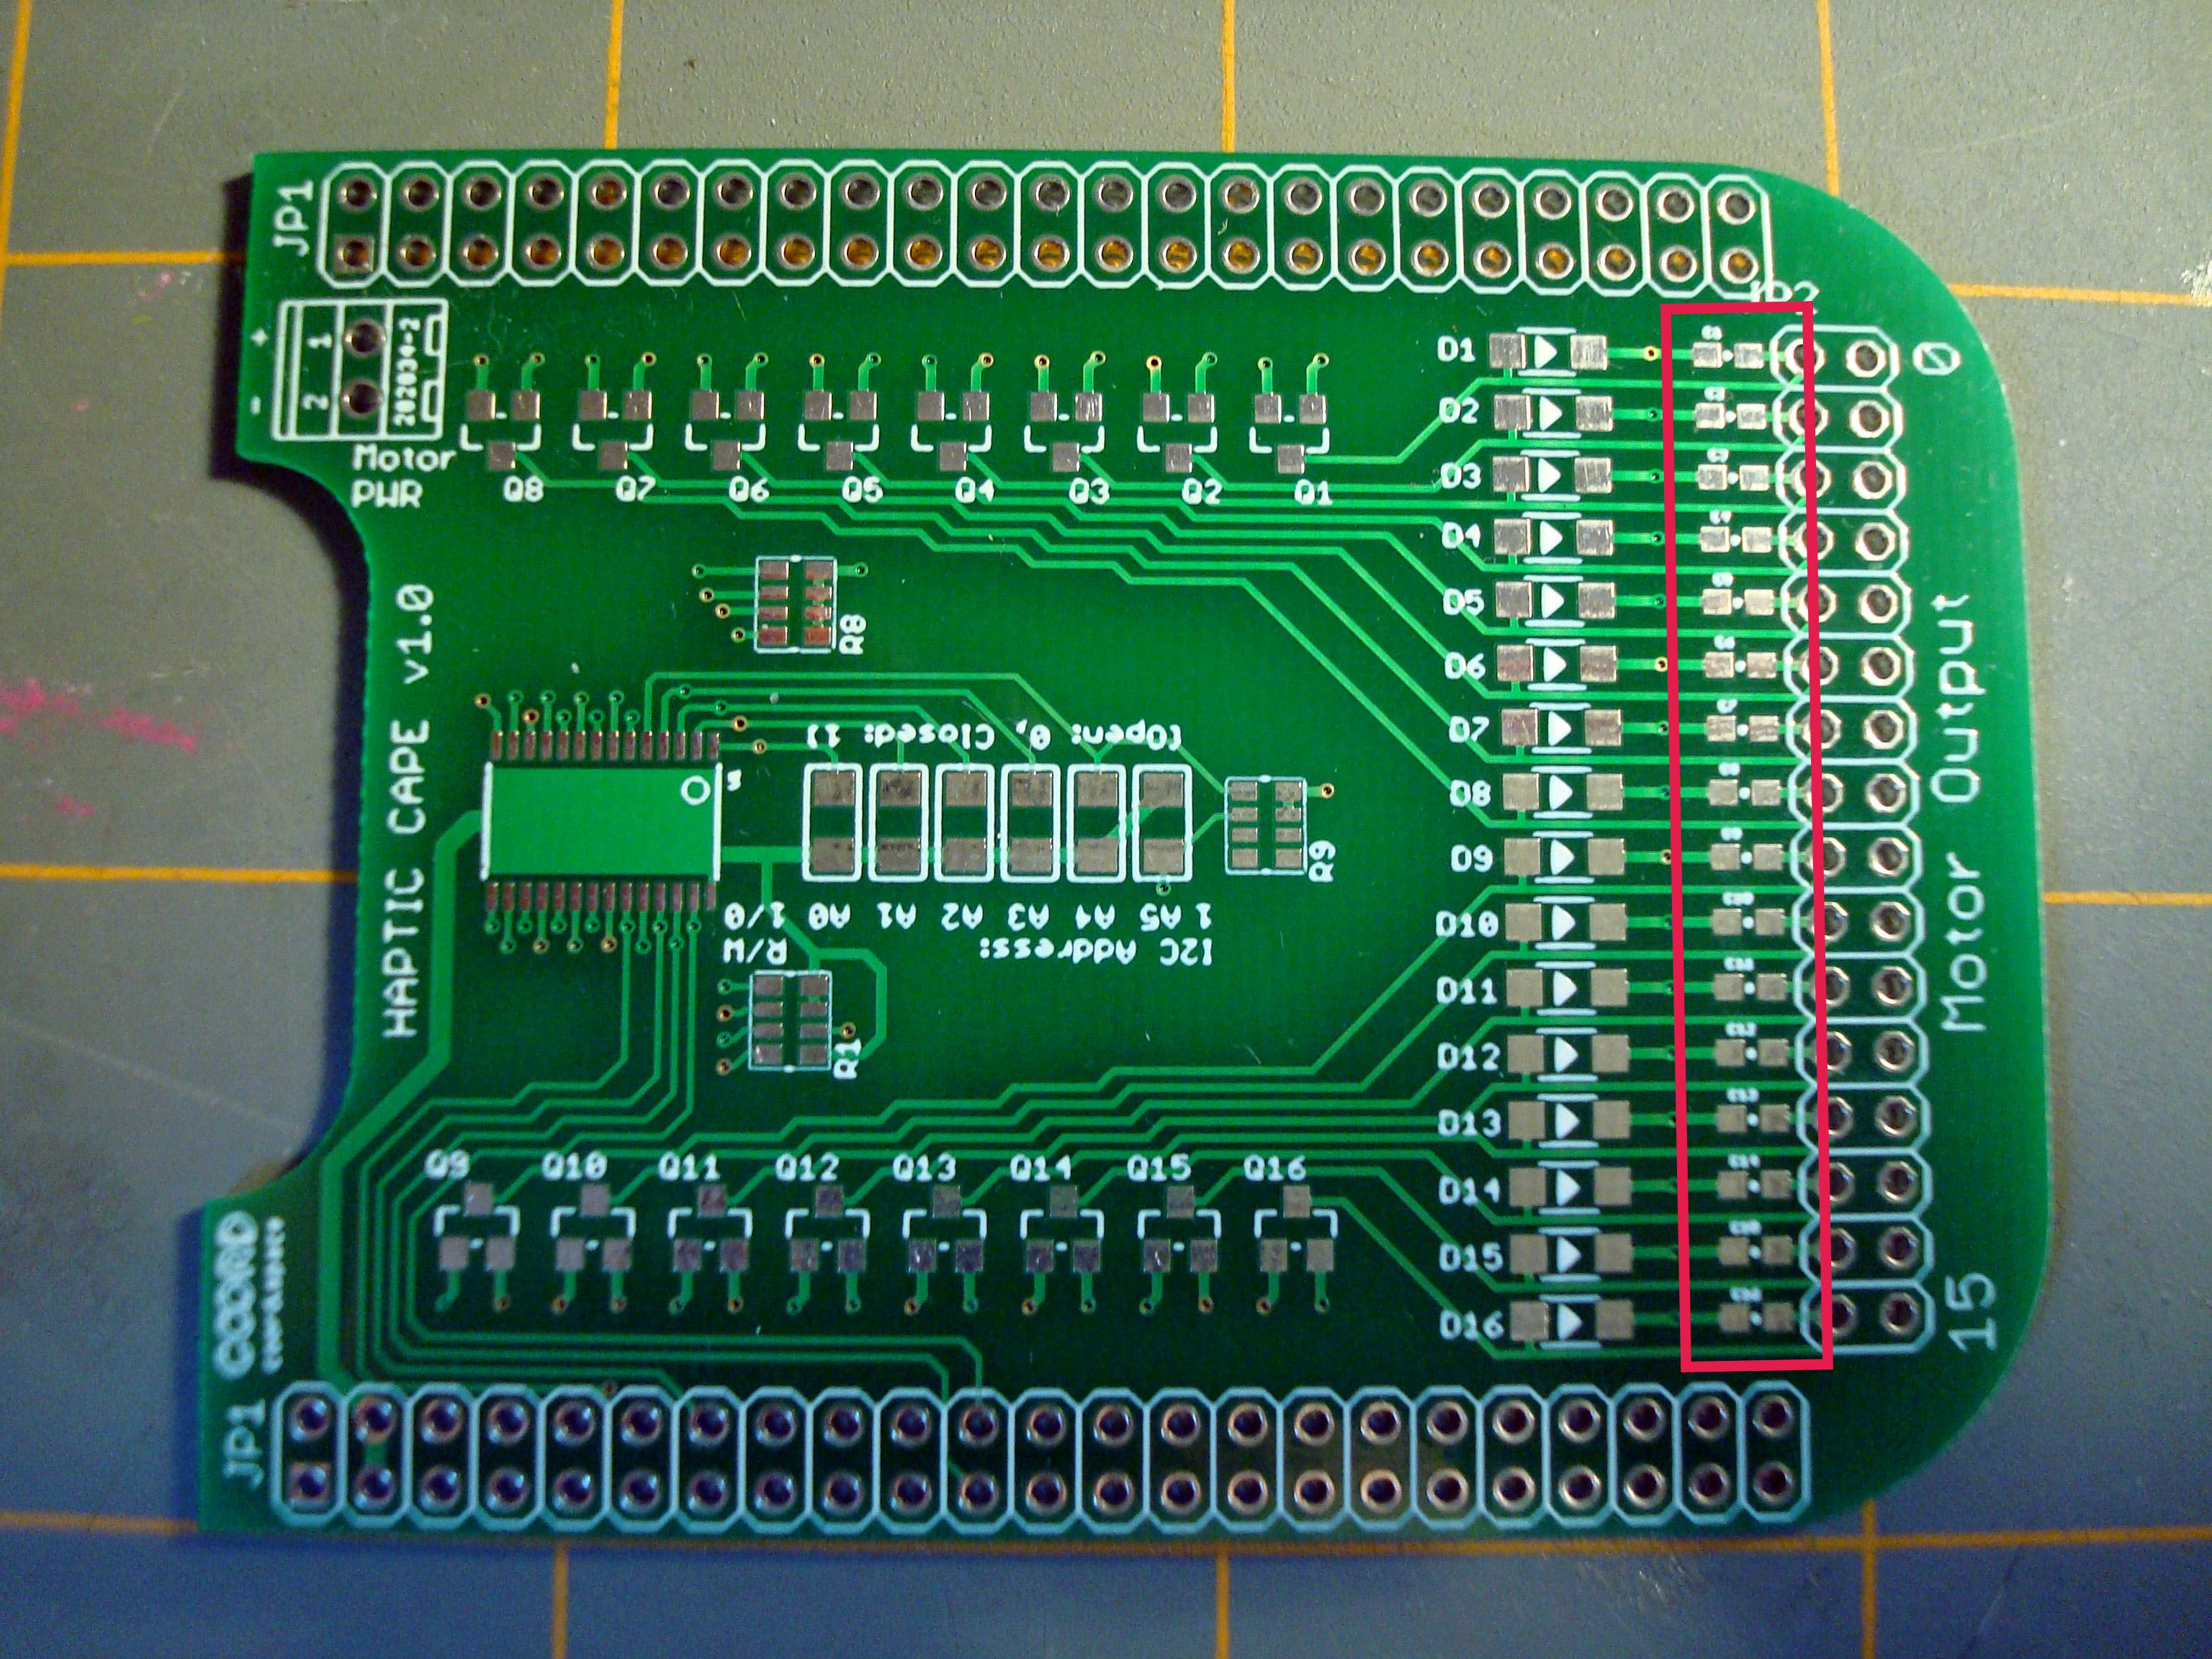 To start, identify the row of 0603 pads right next to the output header holes. These are for the CL10F104ZB8NNNC Capacitors. To follow the SparkFun SMD soldering guide, heat one row of these pads and drop a tiny bit of solder onto it, letting it flow out to cover the entire space.